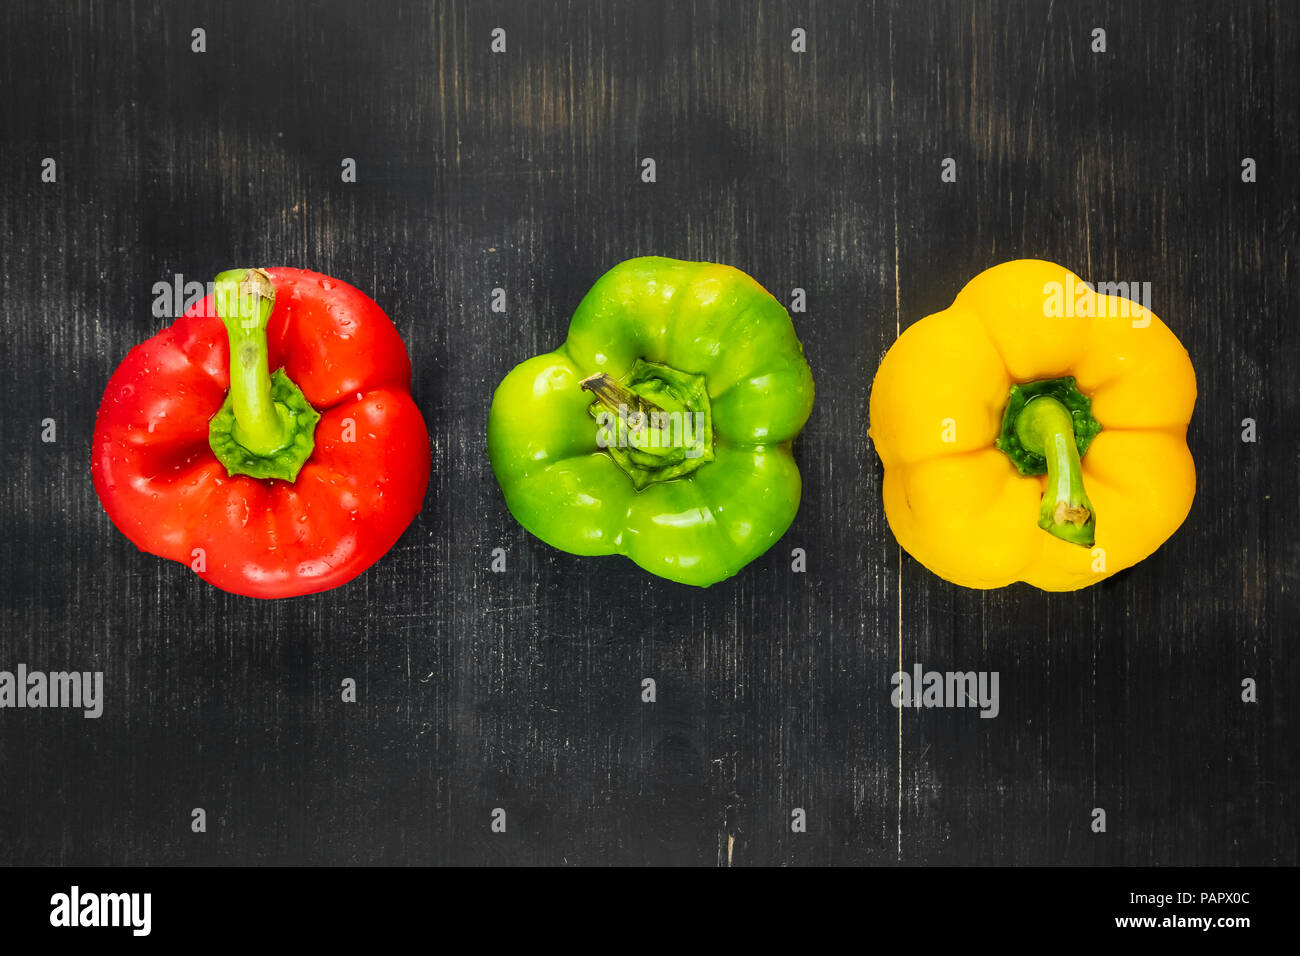 Top view of three fresh bright bell peppers on black rustic background. Shot from above of green, yellow and red paprika vegetables on dark wood table - Stock Image